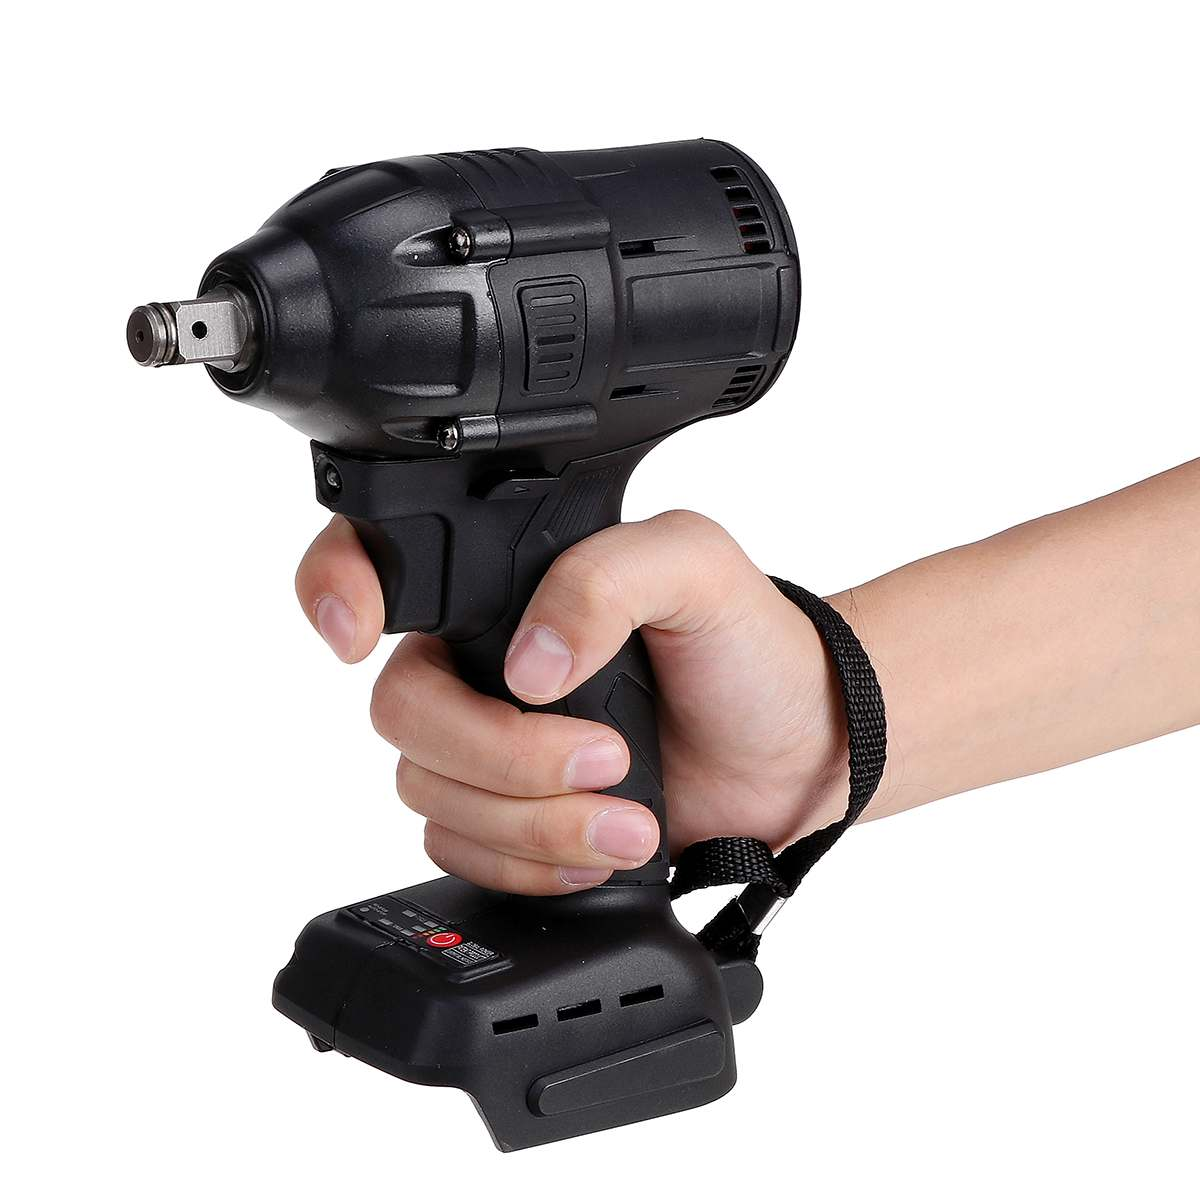 Doersupp 18V 500W 630N m  Li-Ion Cordless Impact Wrench Driver 1 2 Electric Wrench Replacement for Makita 18V Battery